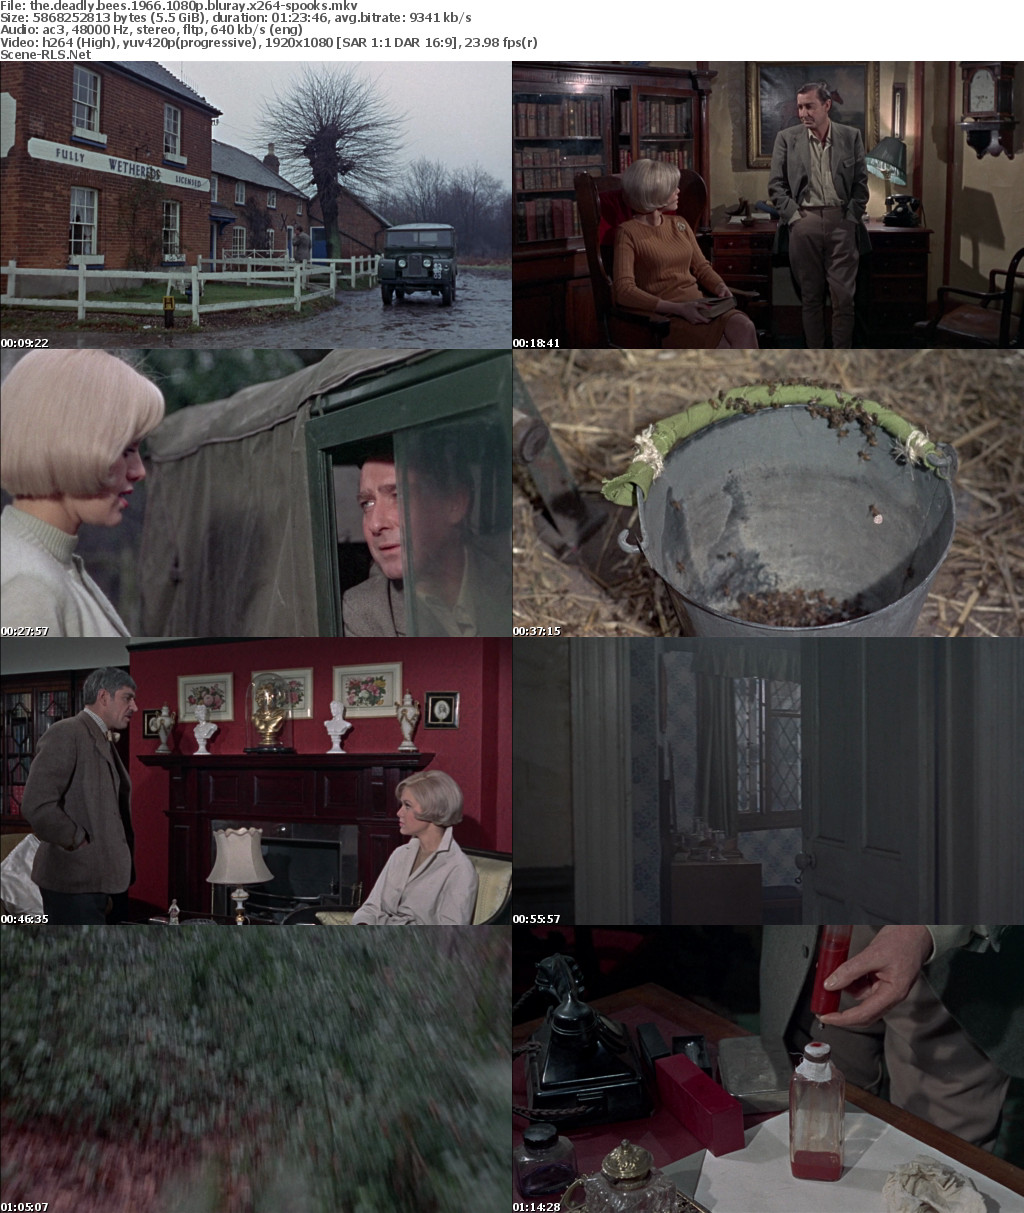 The Deadly Bees 1966 1080p BluRay x264-SPOOKS - Scene Release